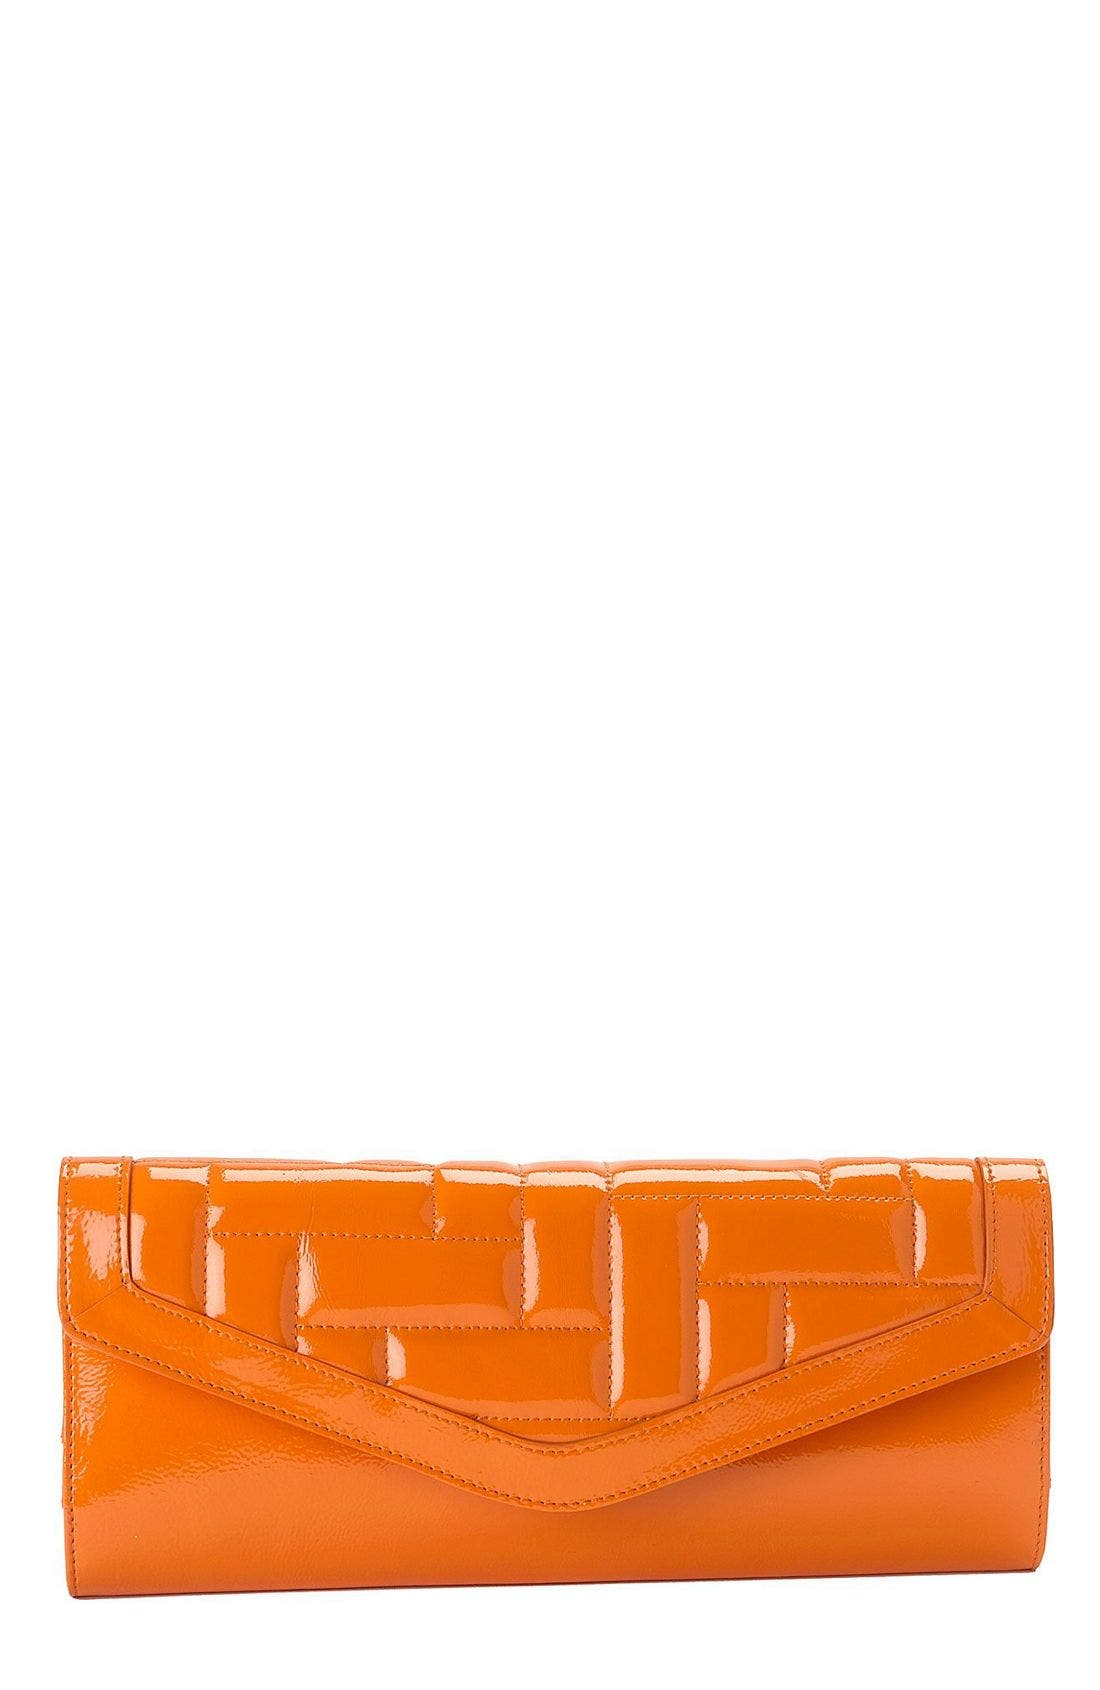 Main Image - Hobo Quilted Patent Leather Clutch